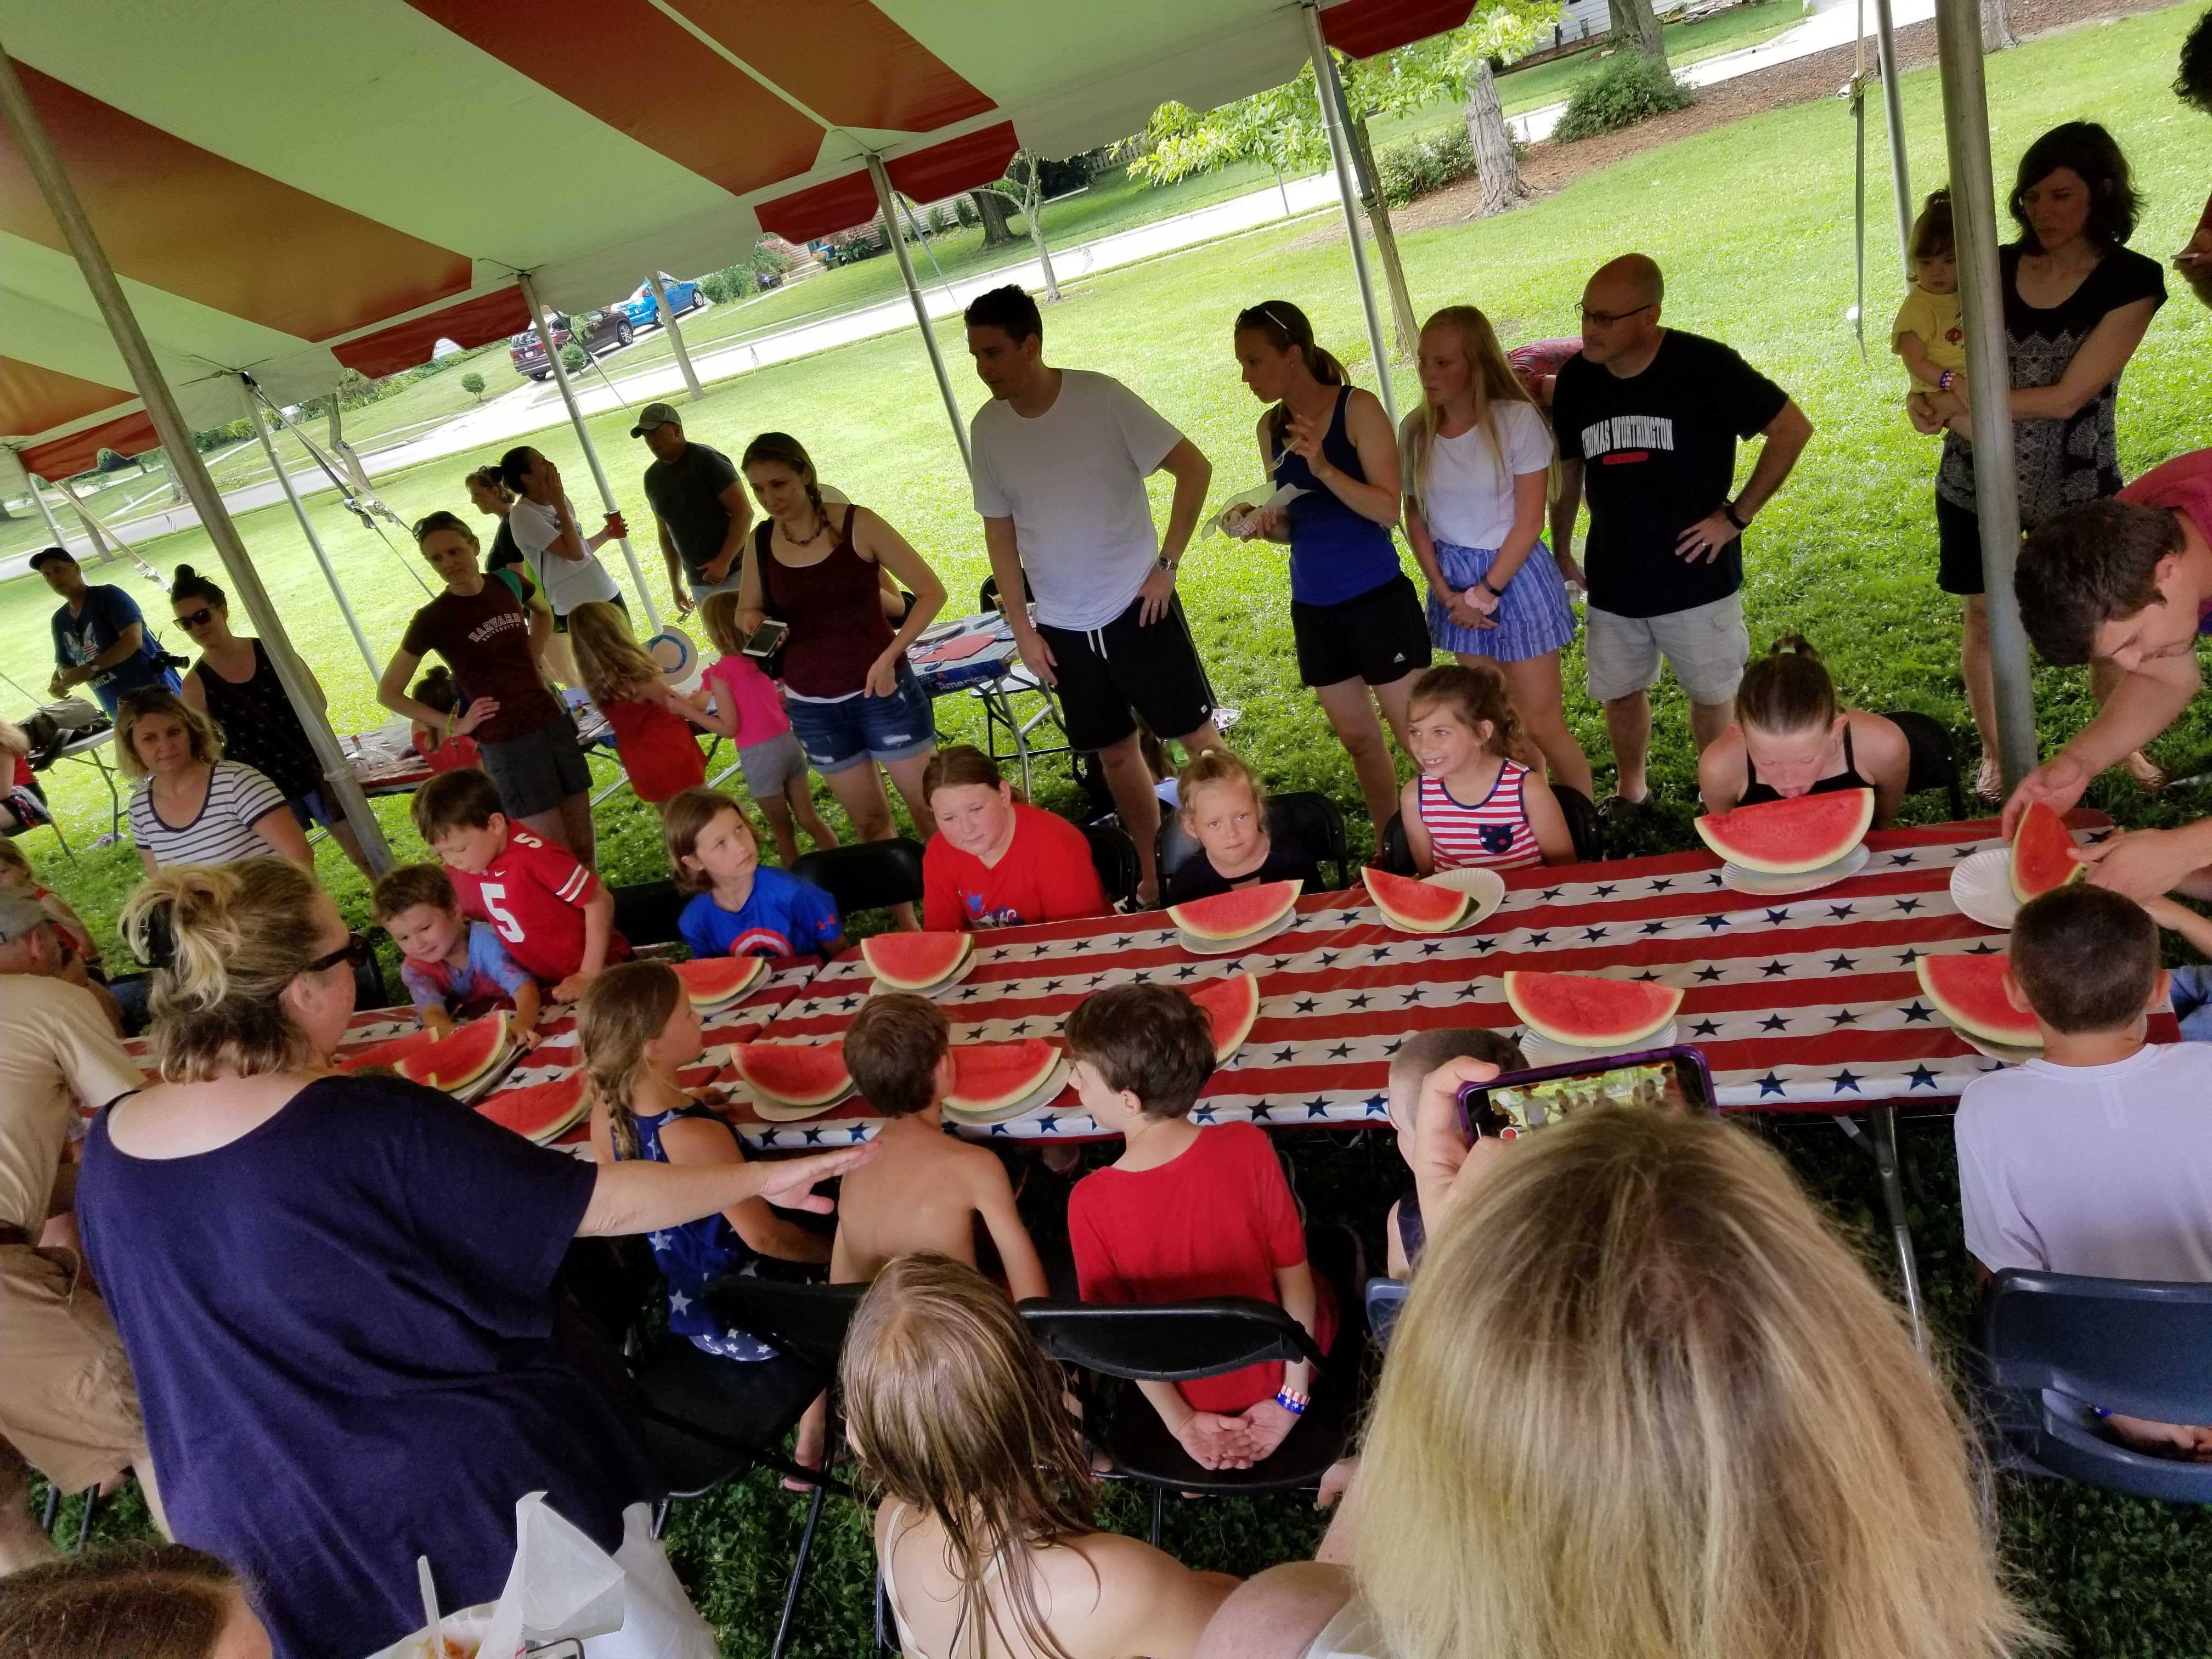 CHCA 4th of July Photos